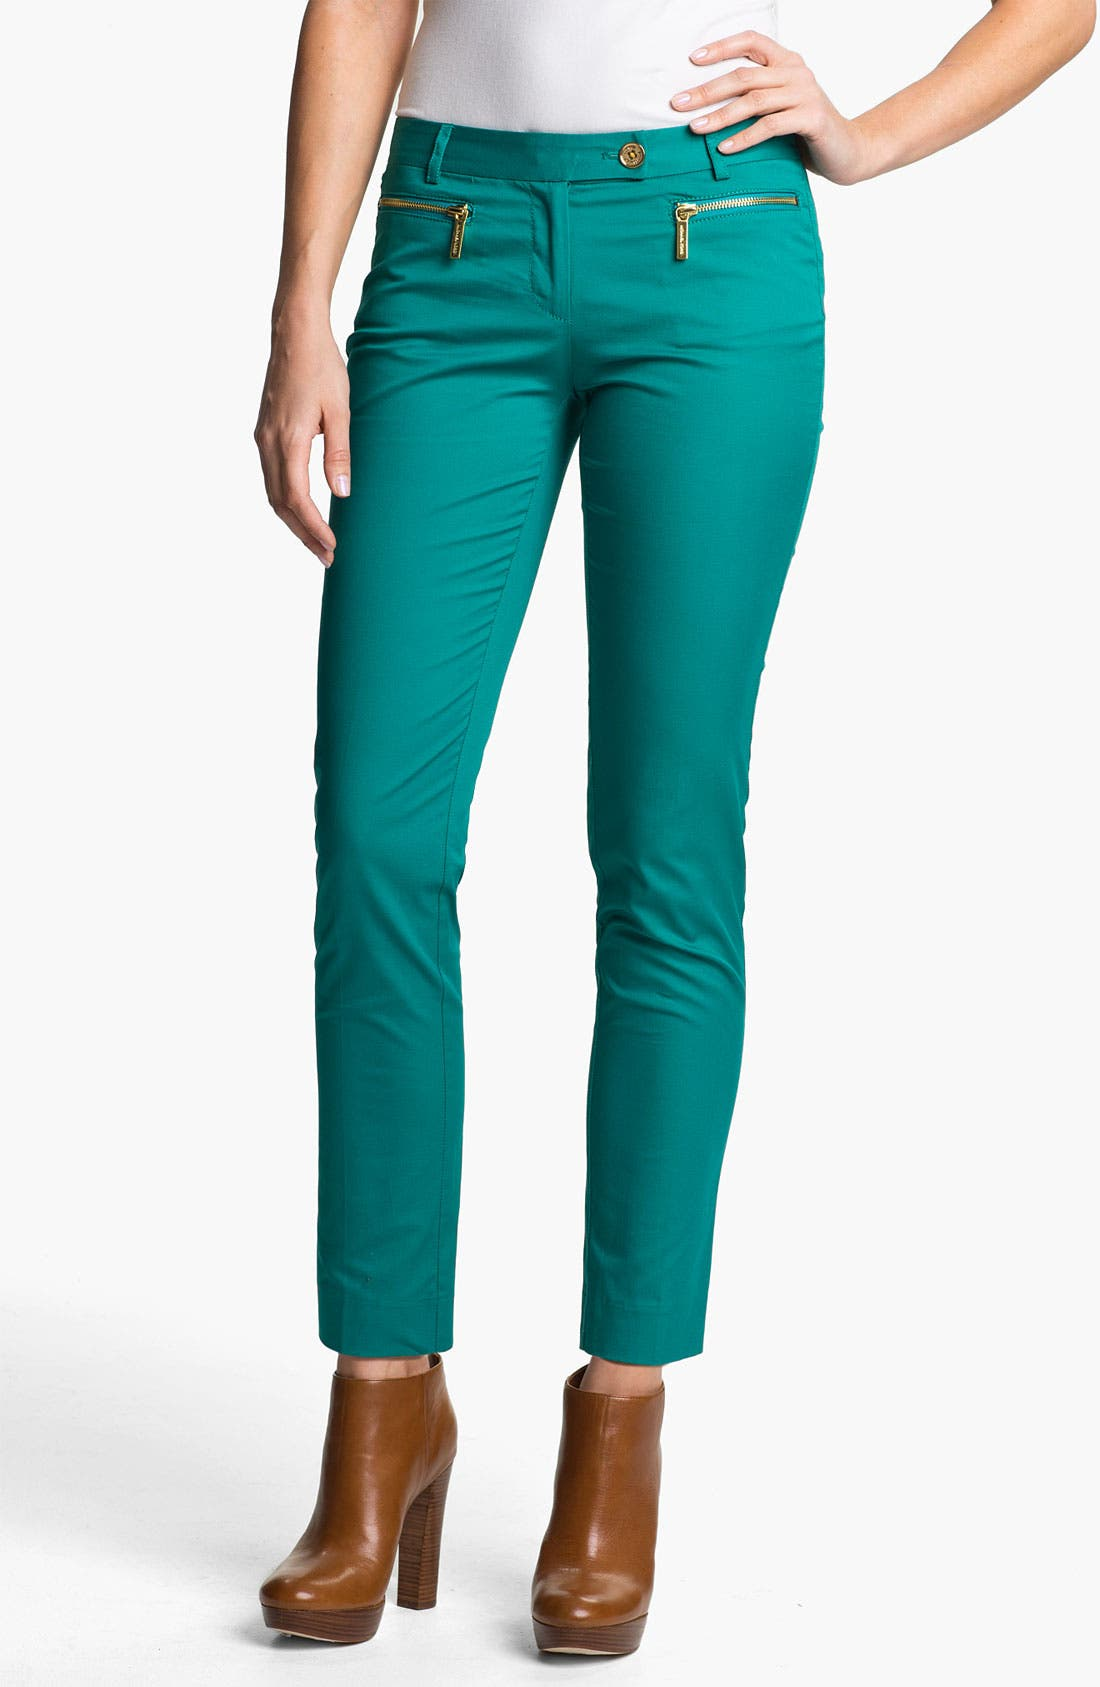 Alternate Image 1 Selected - MICHAEL Michael Kors Zip Pocket Ankle Pants (Petite)